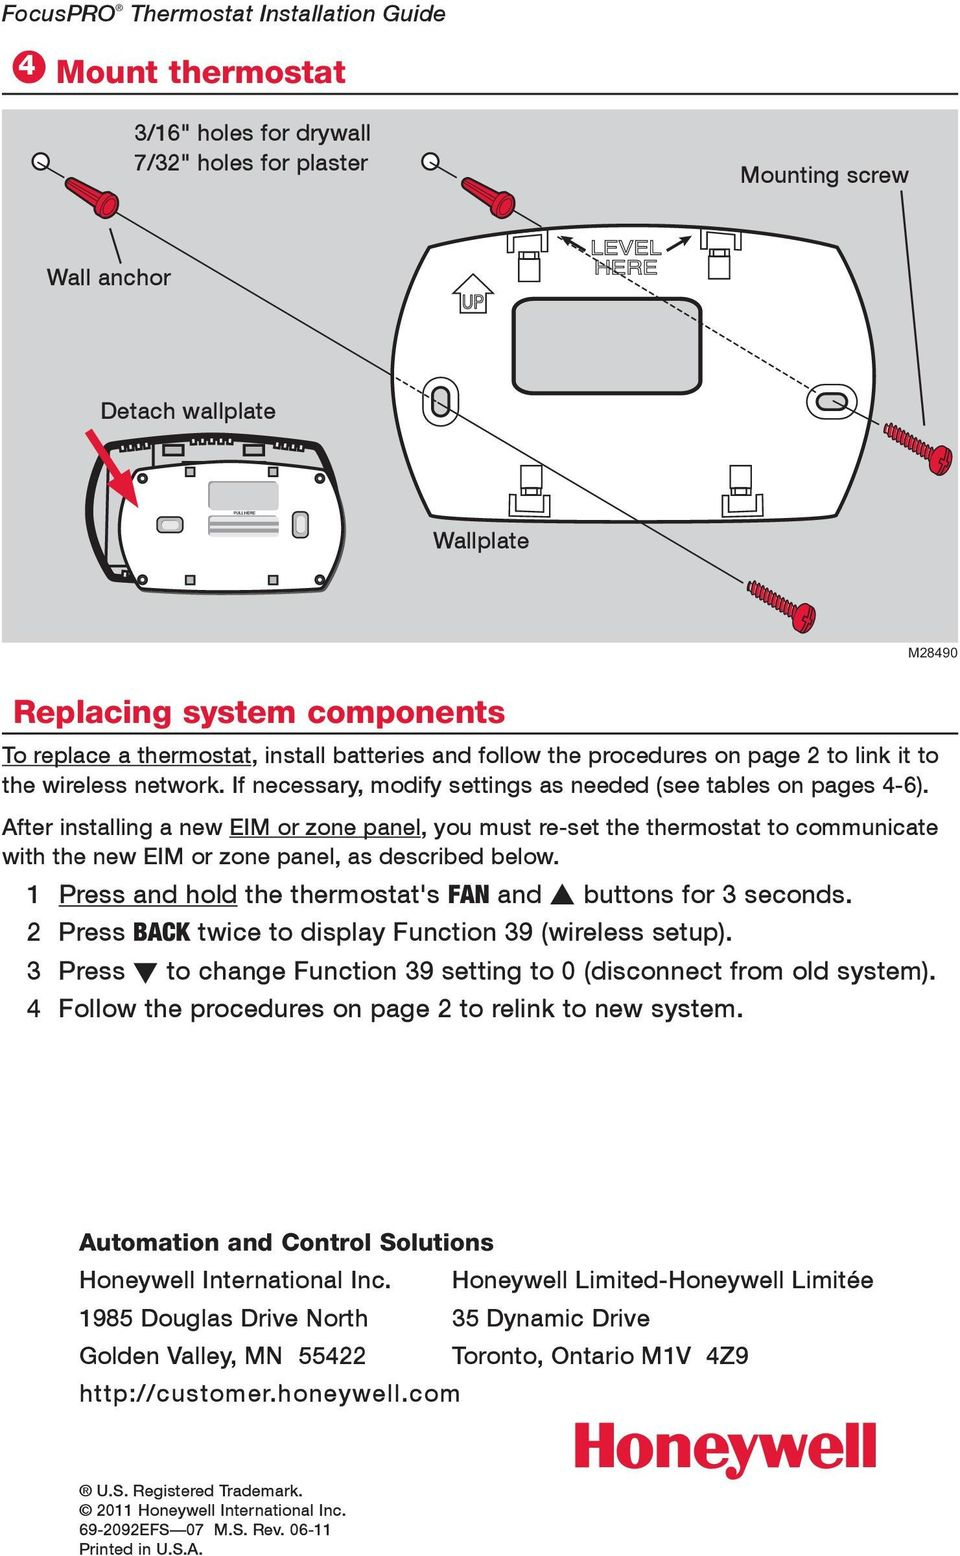 After installing a new EIM or zone panel, you must re-set the thermostat to communicate with the new EIM or zone panel, as described below.